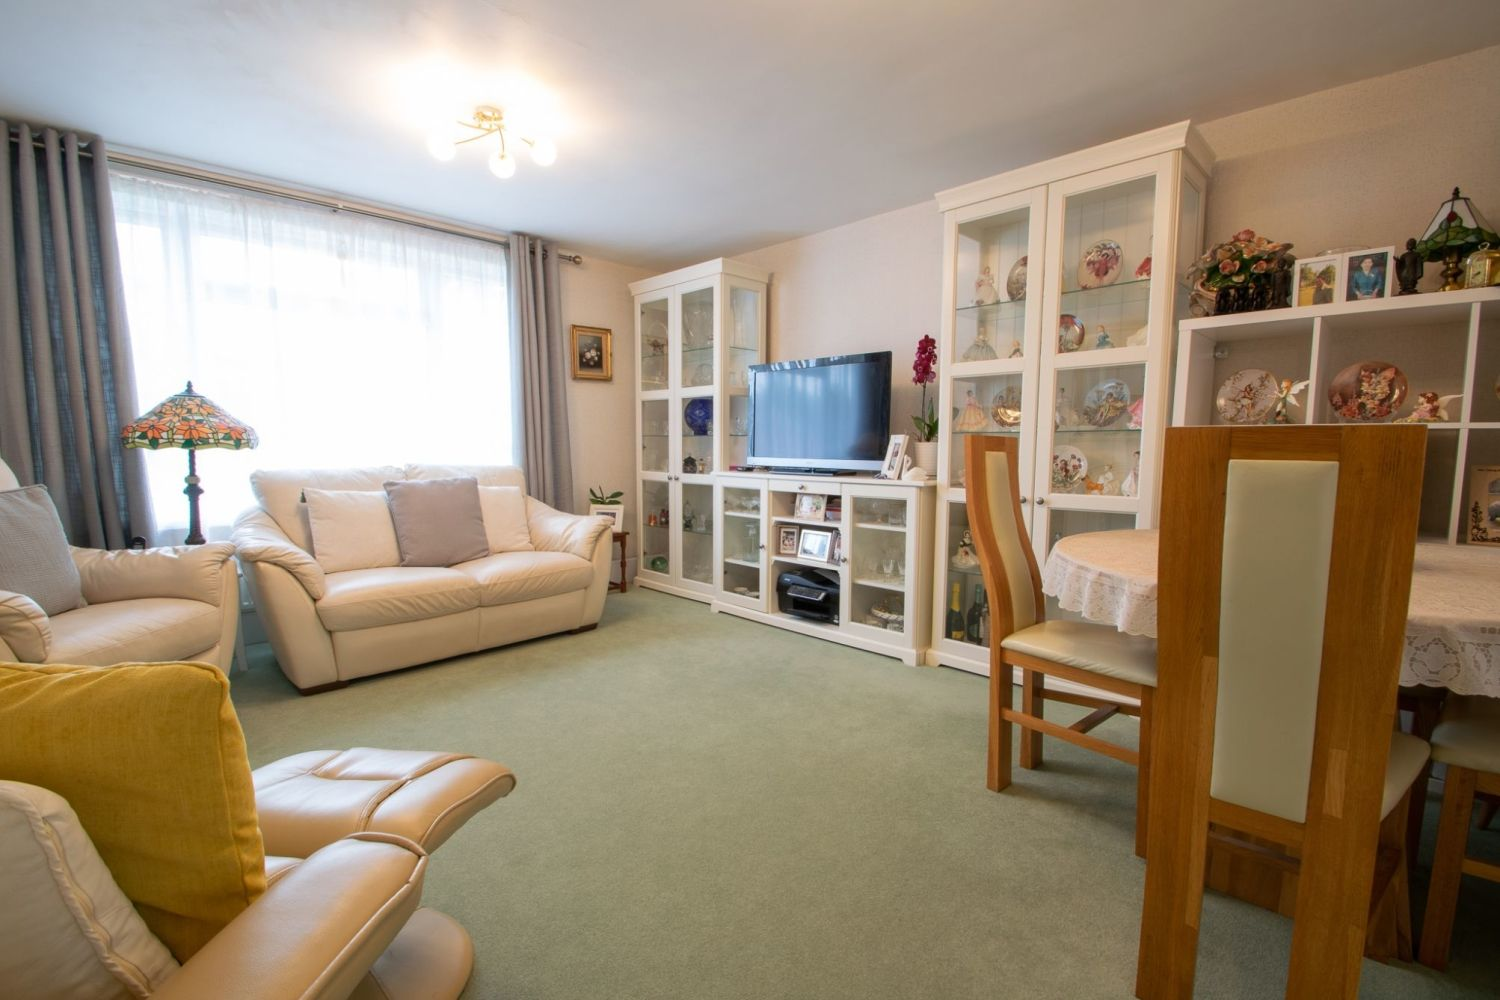 2 bed flat for sale in Enville Street, Stourbridge Central 2